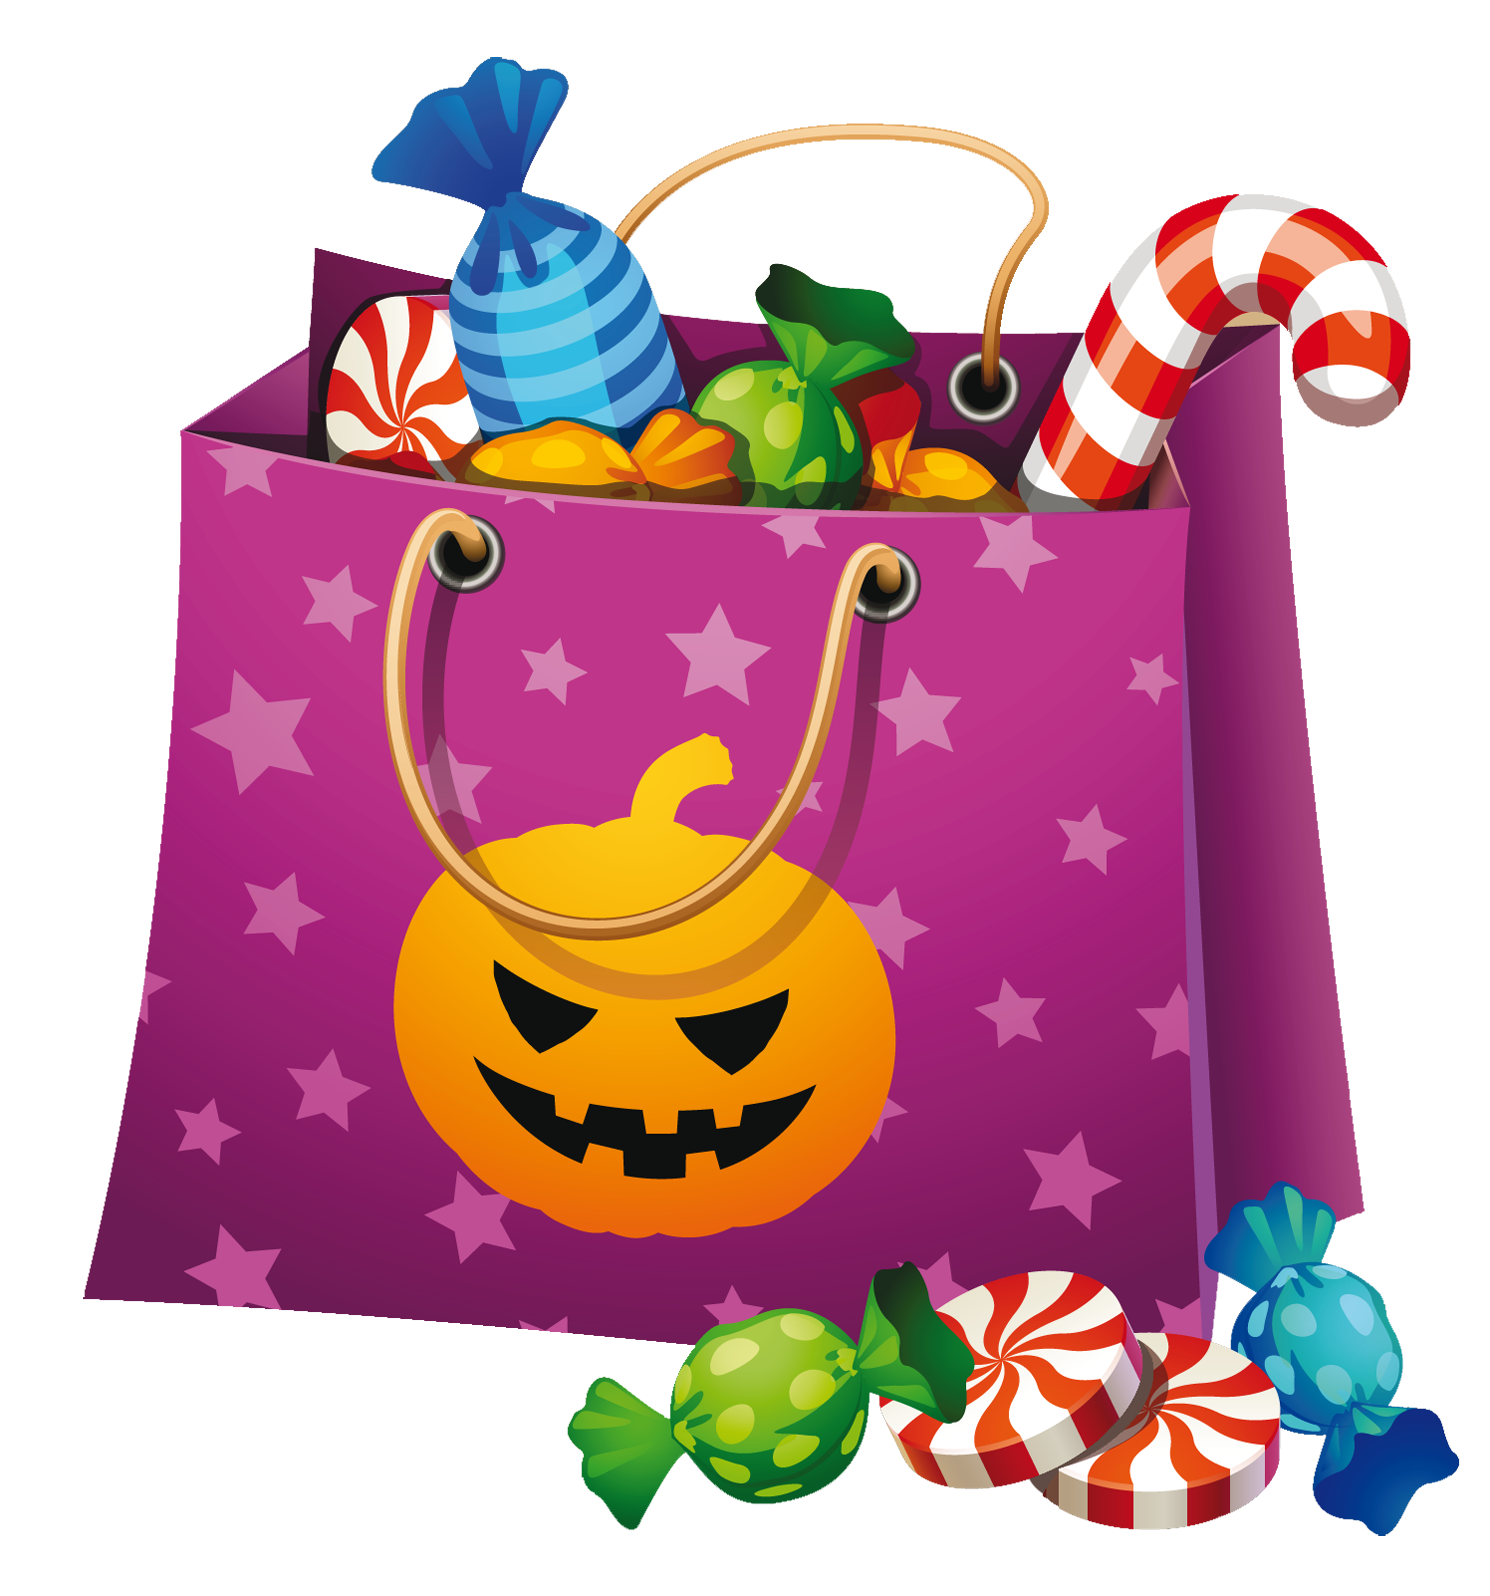 Halloween candy clip art - Halloween Candy Clipart